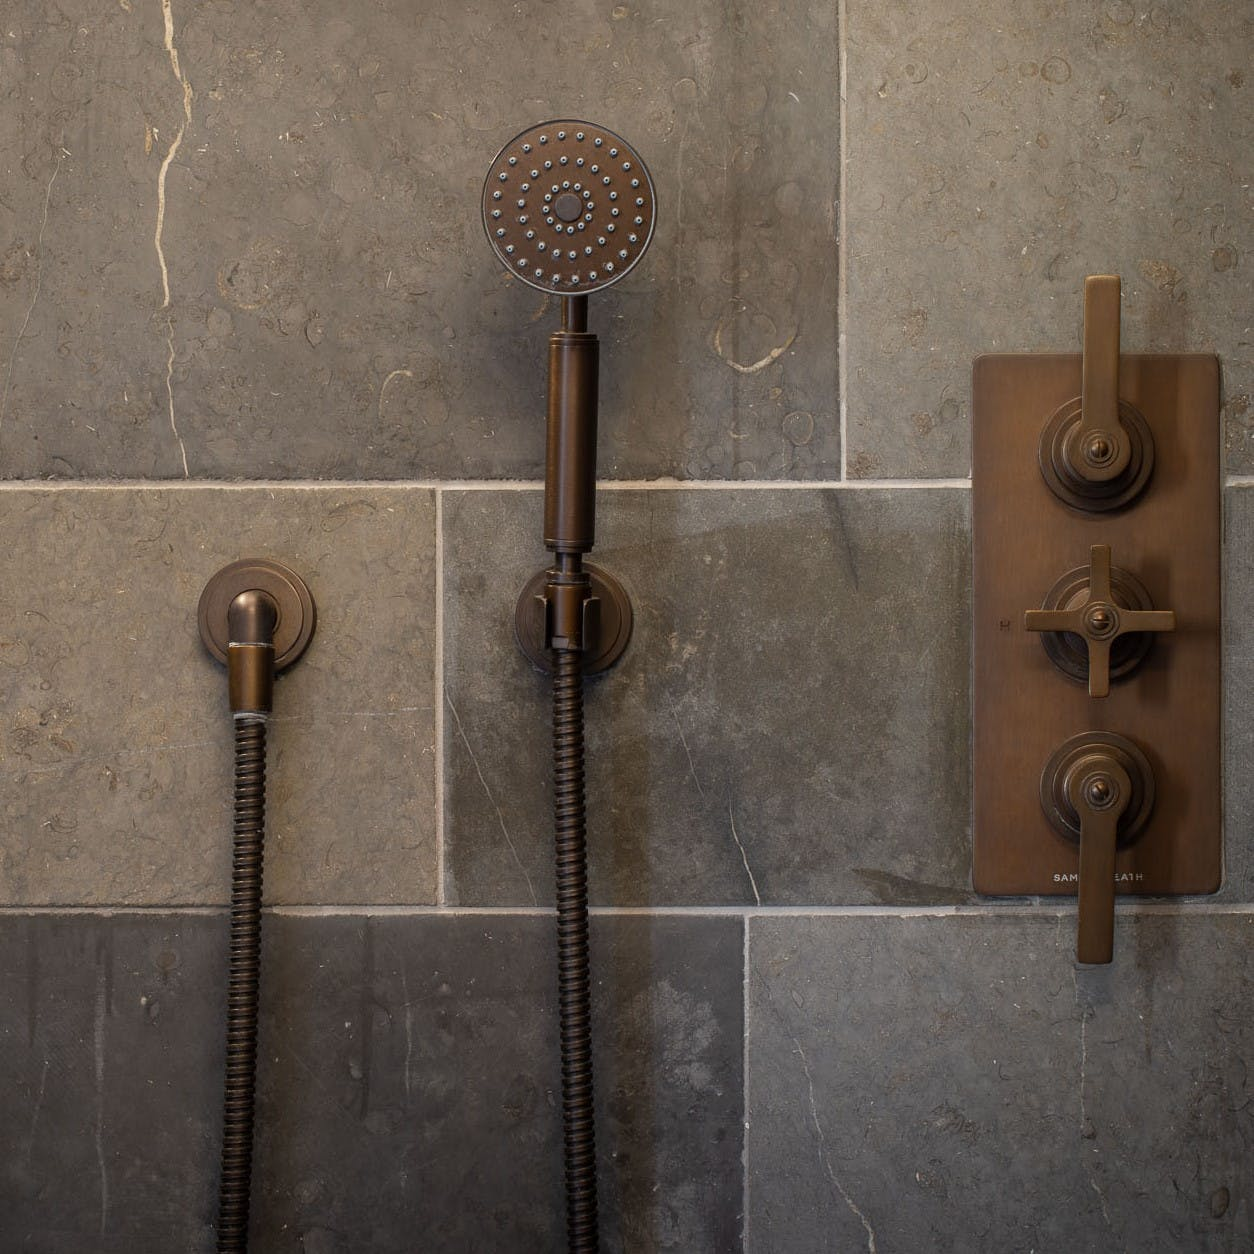 Samuel Heath LMK Pure shower in a bronze finish